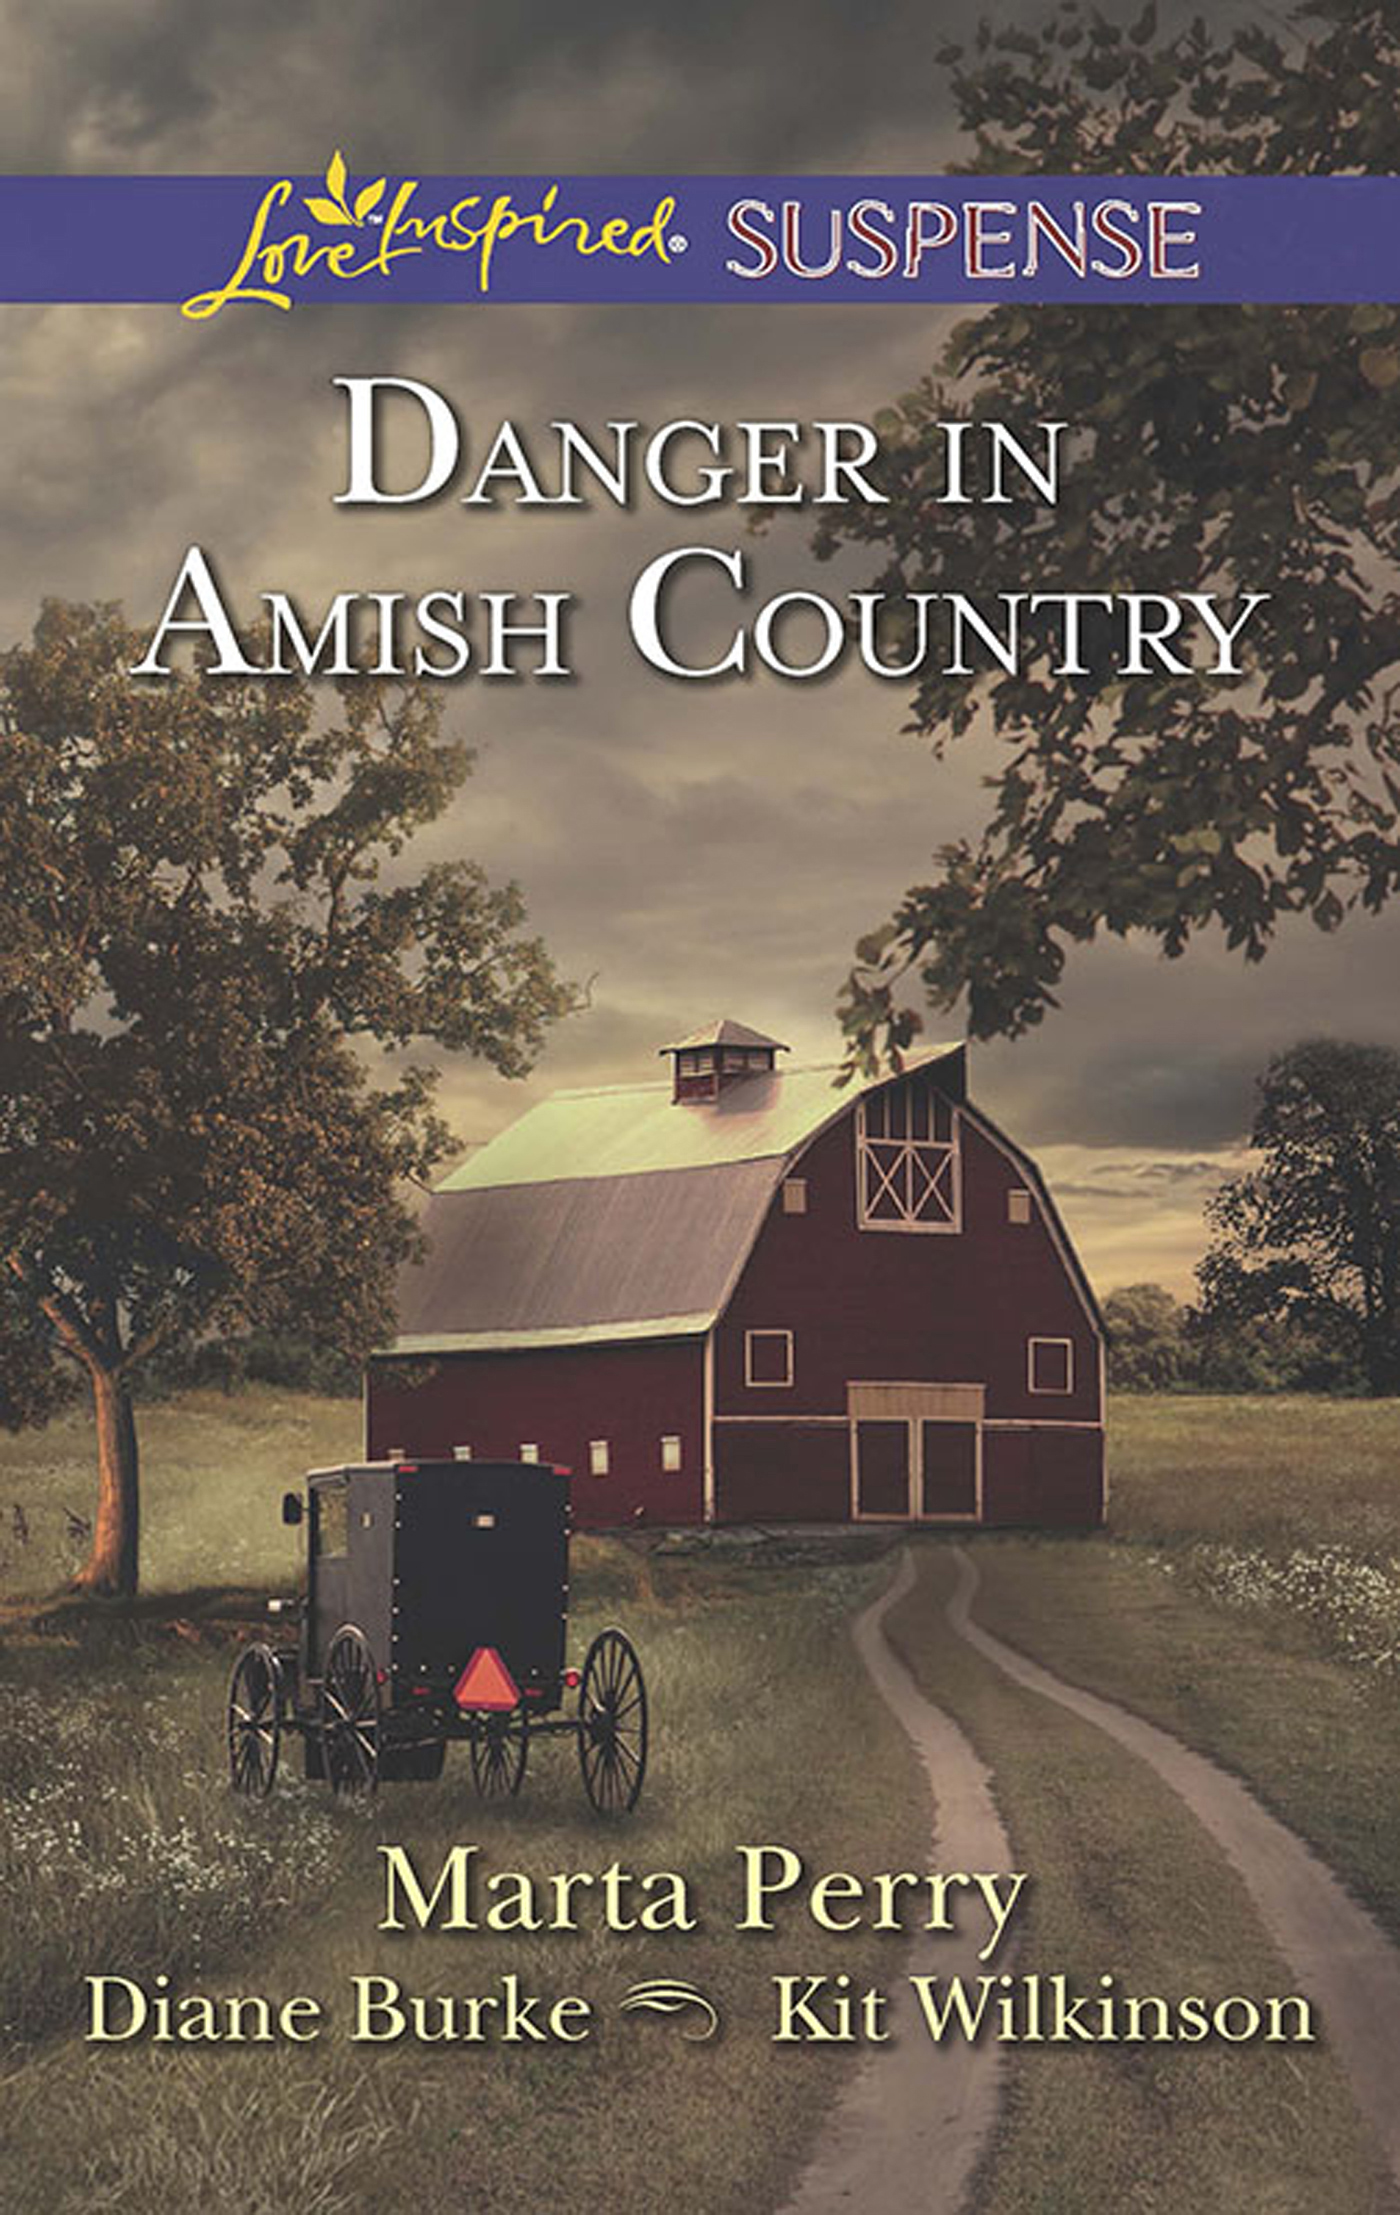 Danger in Amish Country (Mills & Boon Love Inspired Suspense)